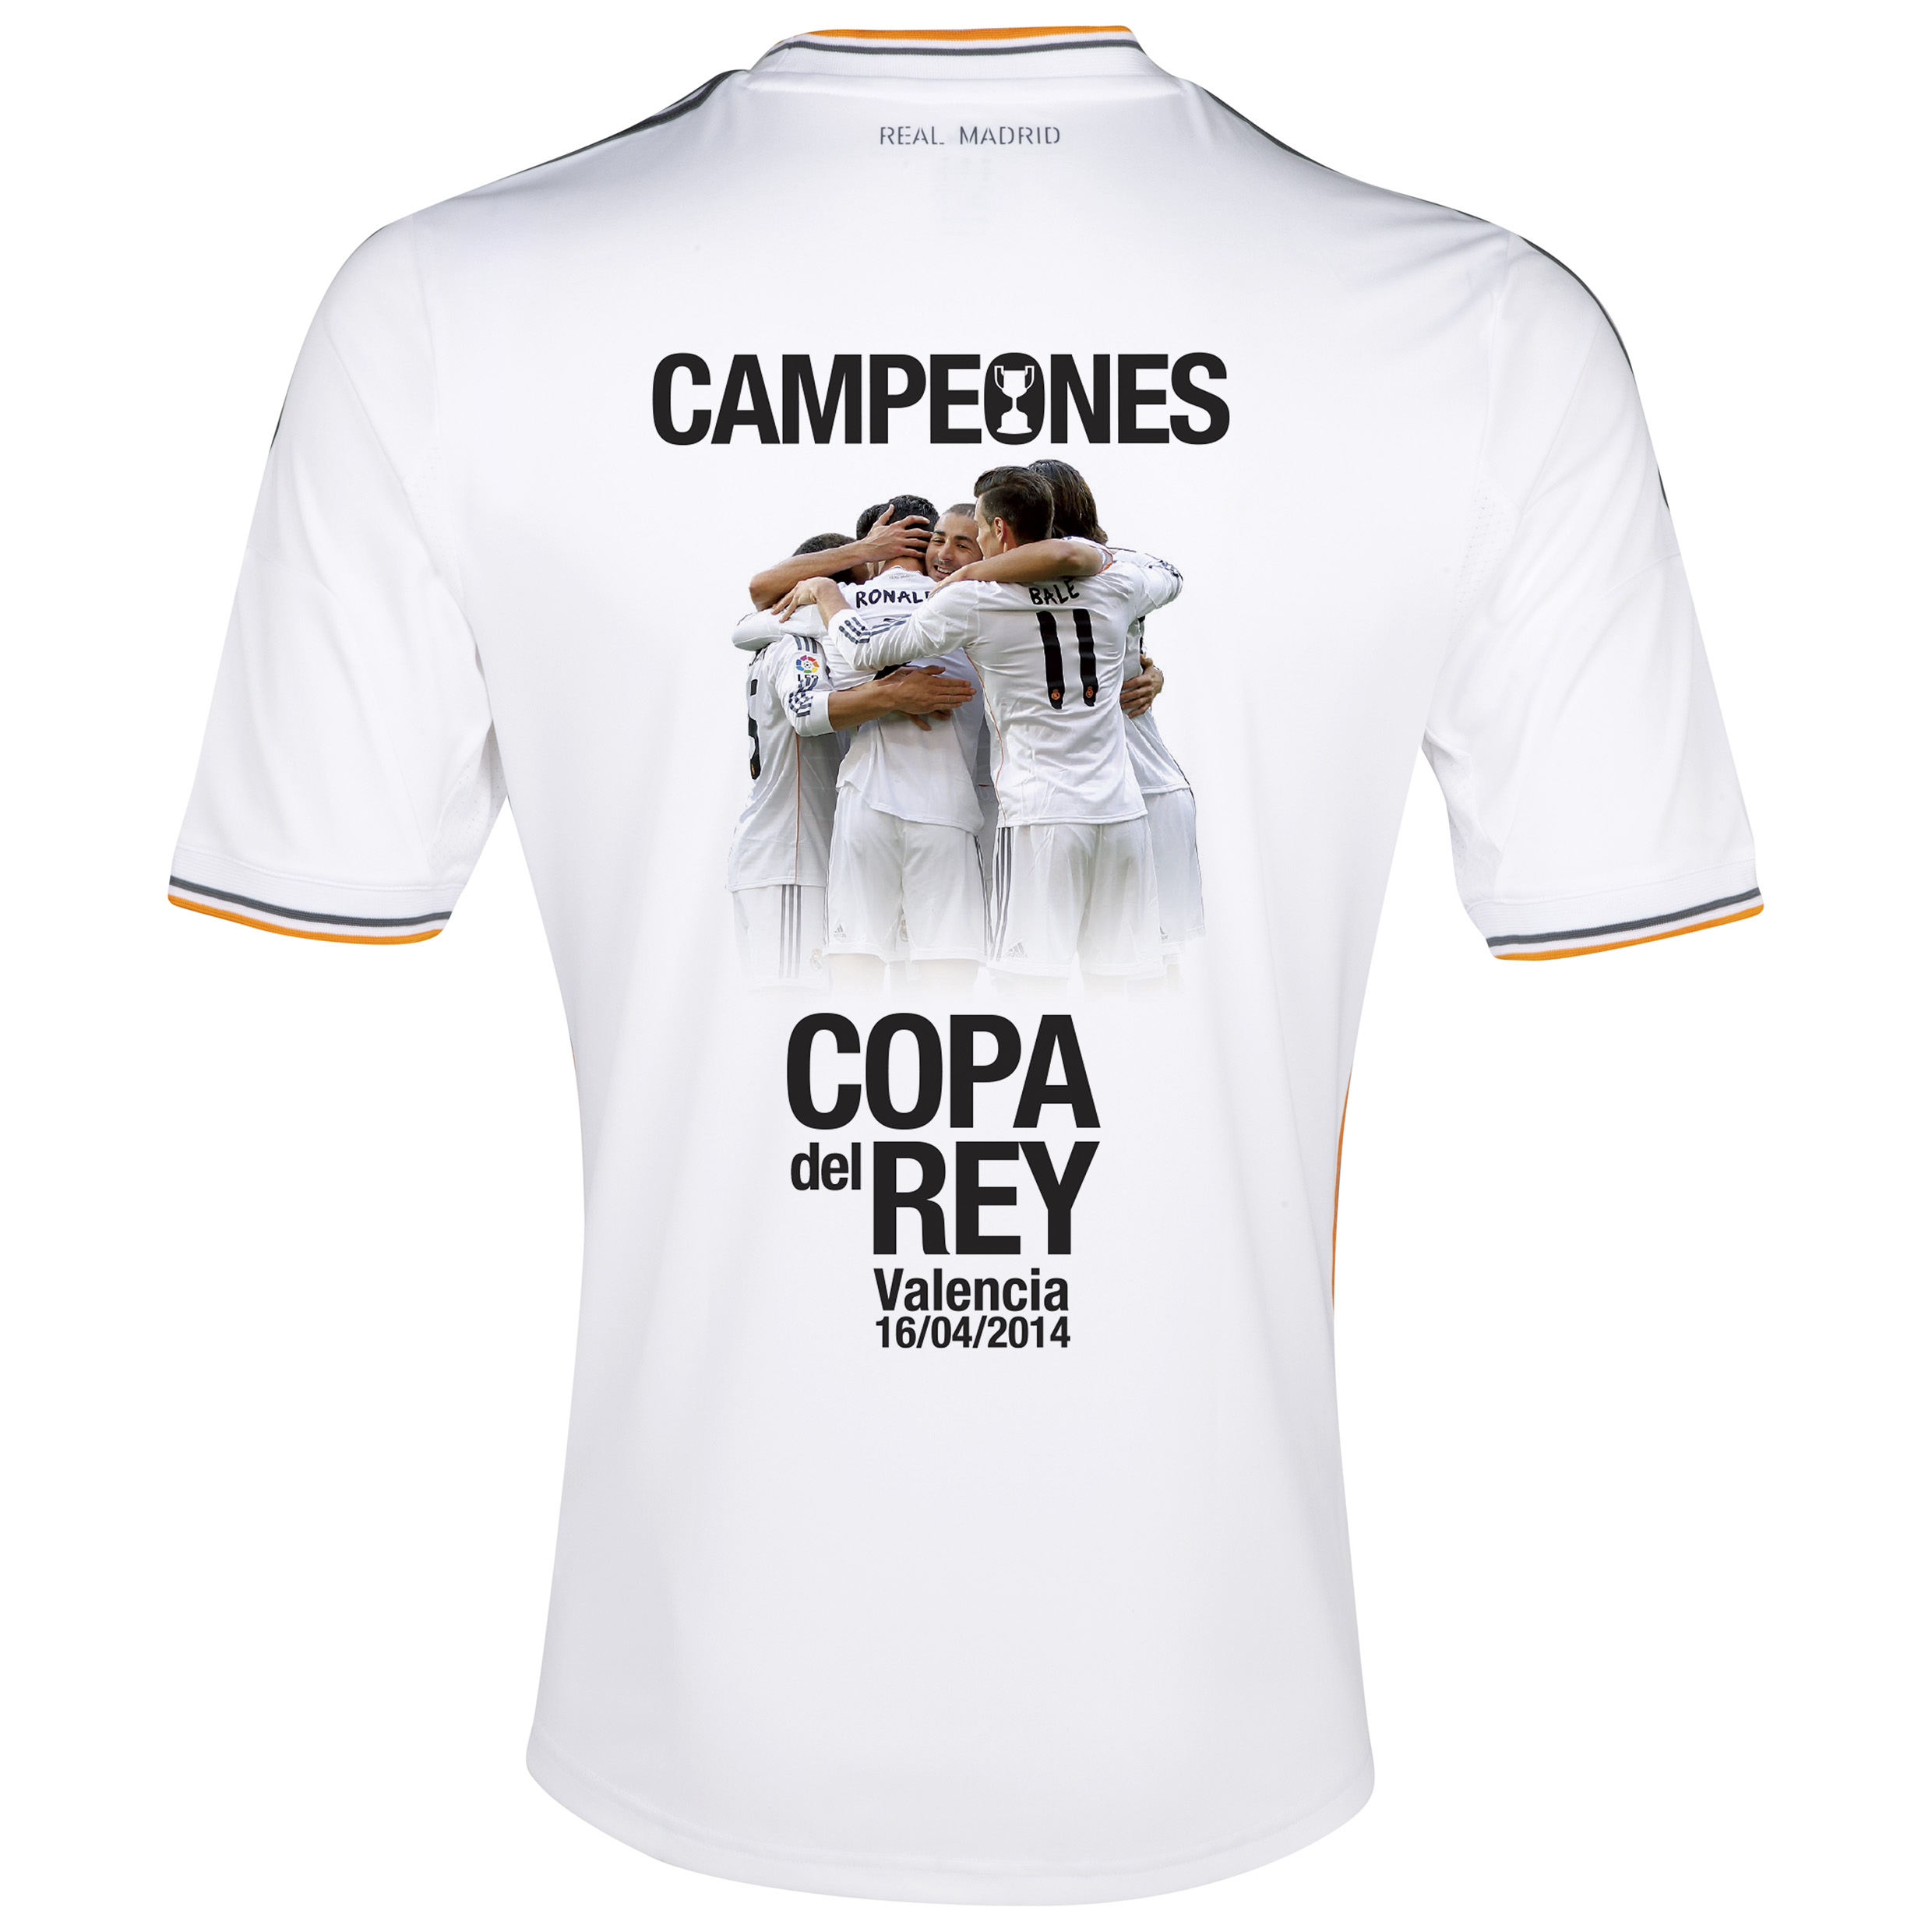 Real Madrid Home Shirt 2013/14 with Copa Del Rey Winner printing